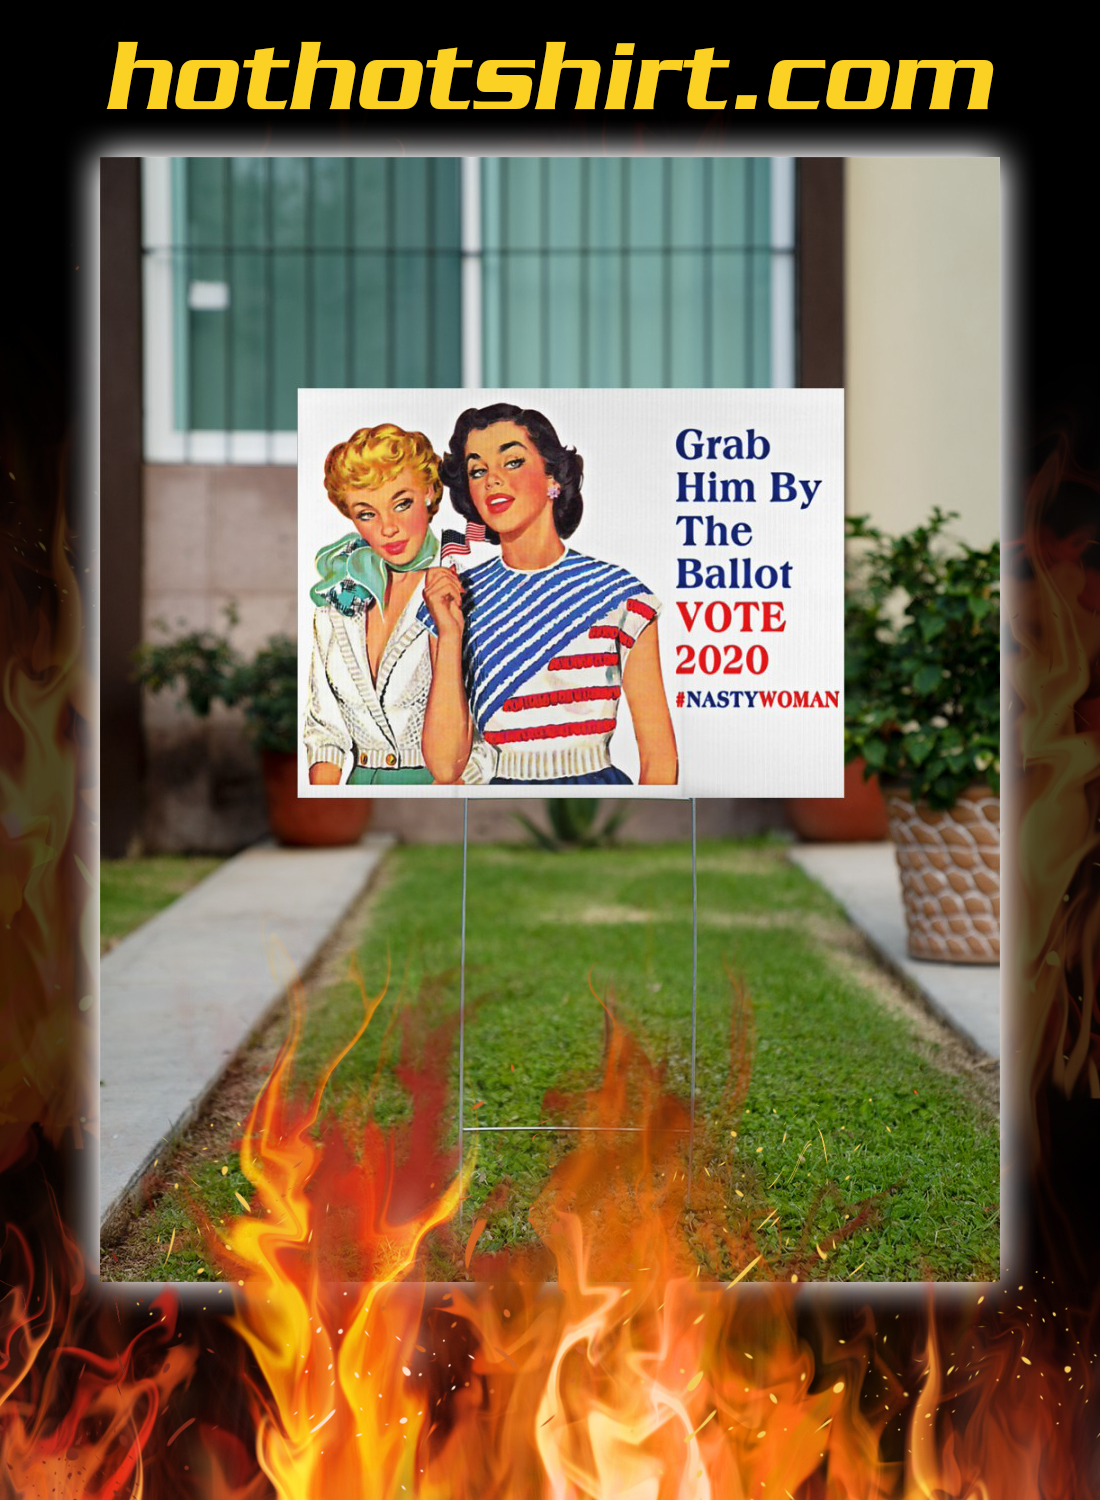 Women grab him by the ballot vote 2020 nasty woman yard signs